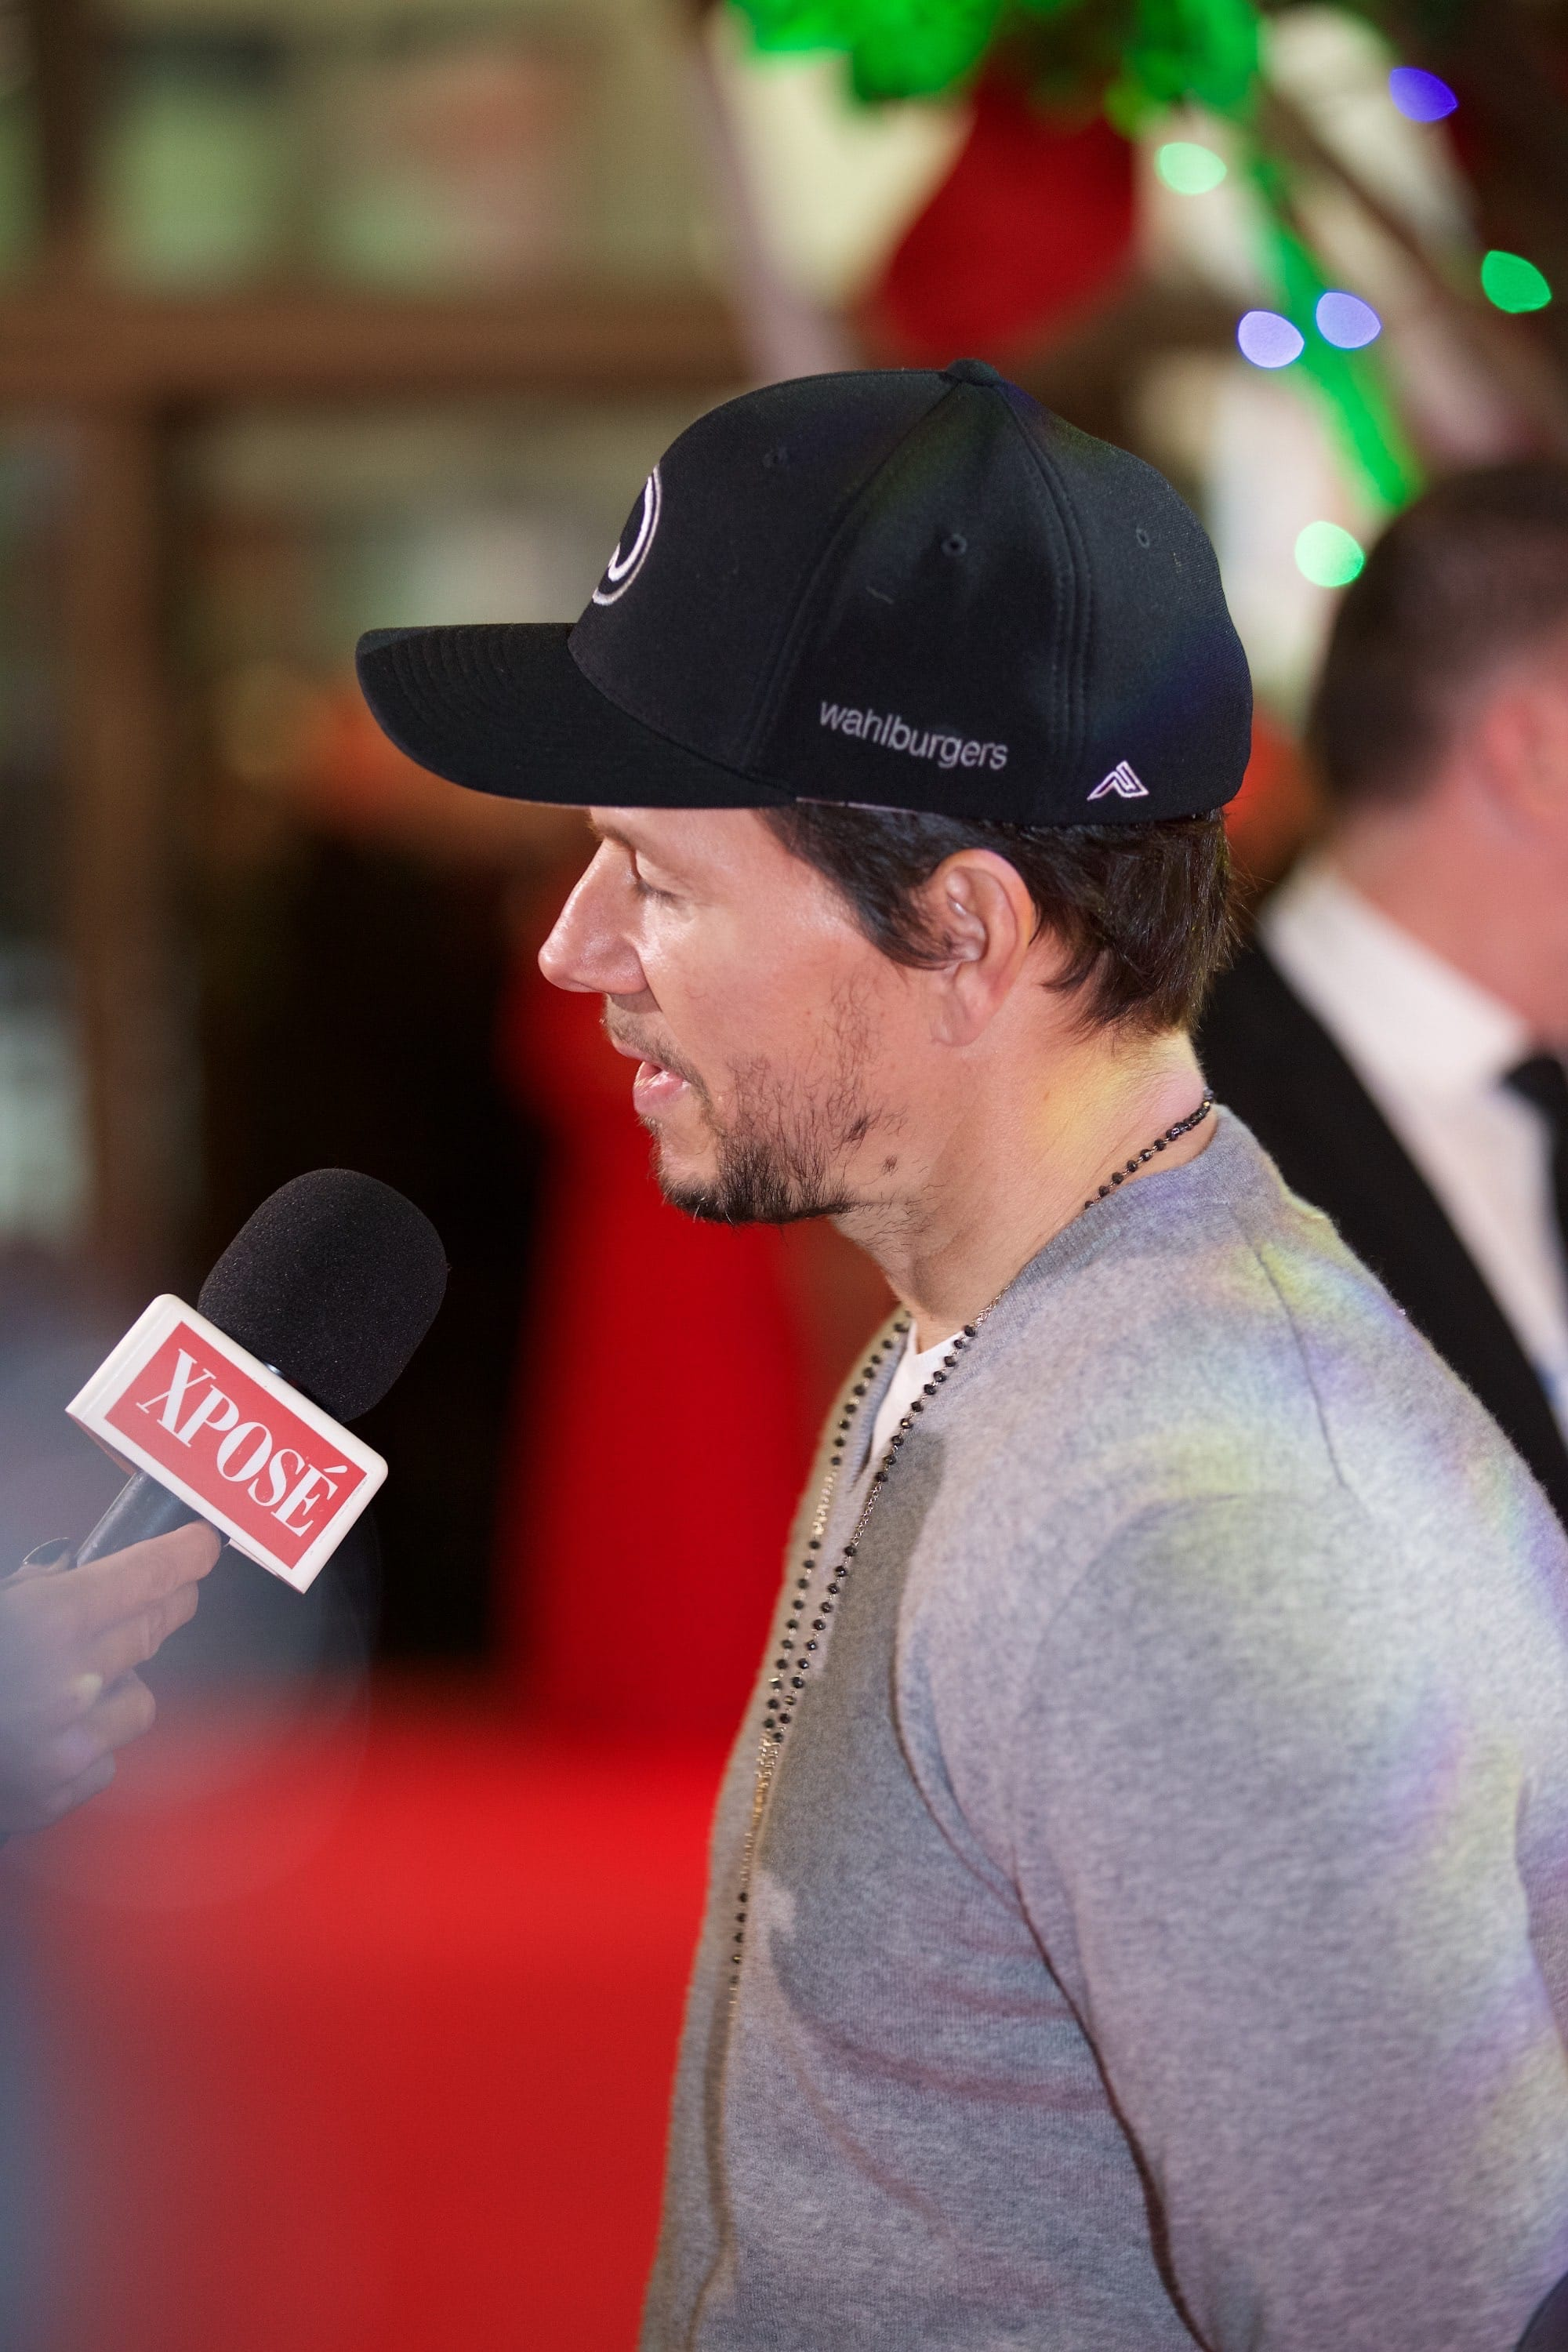 Red Carpet photography Mark wahlberg